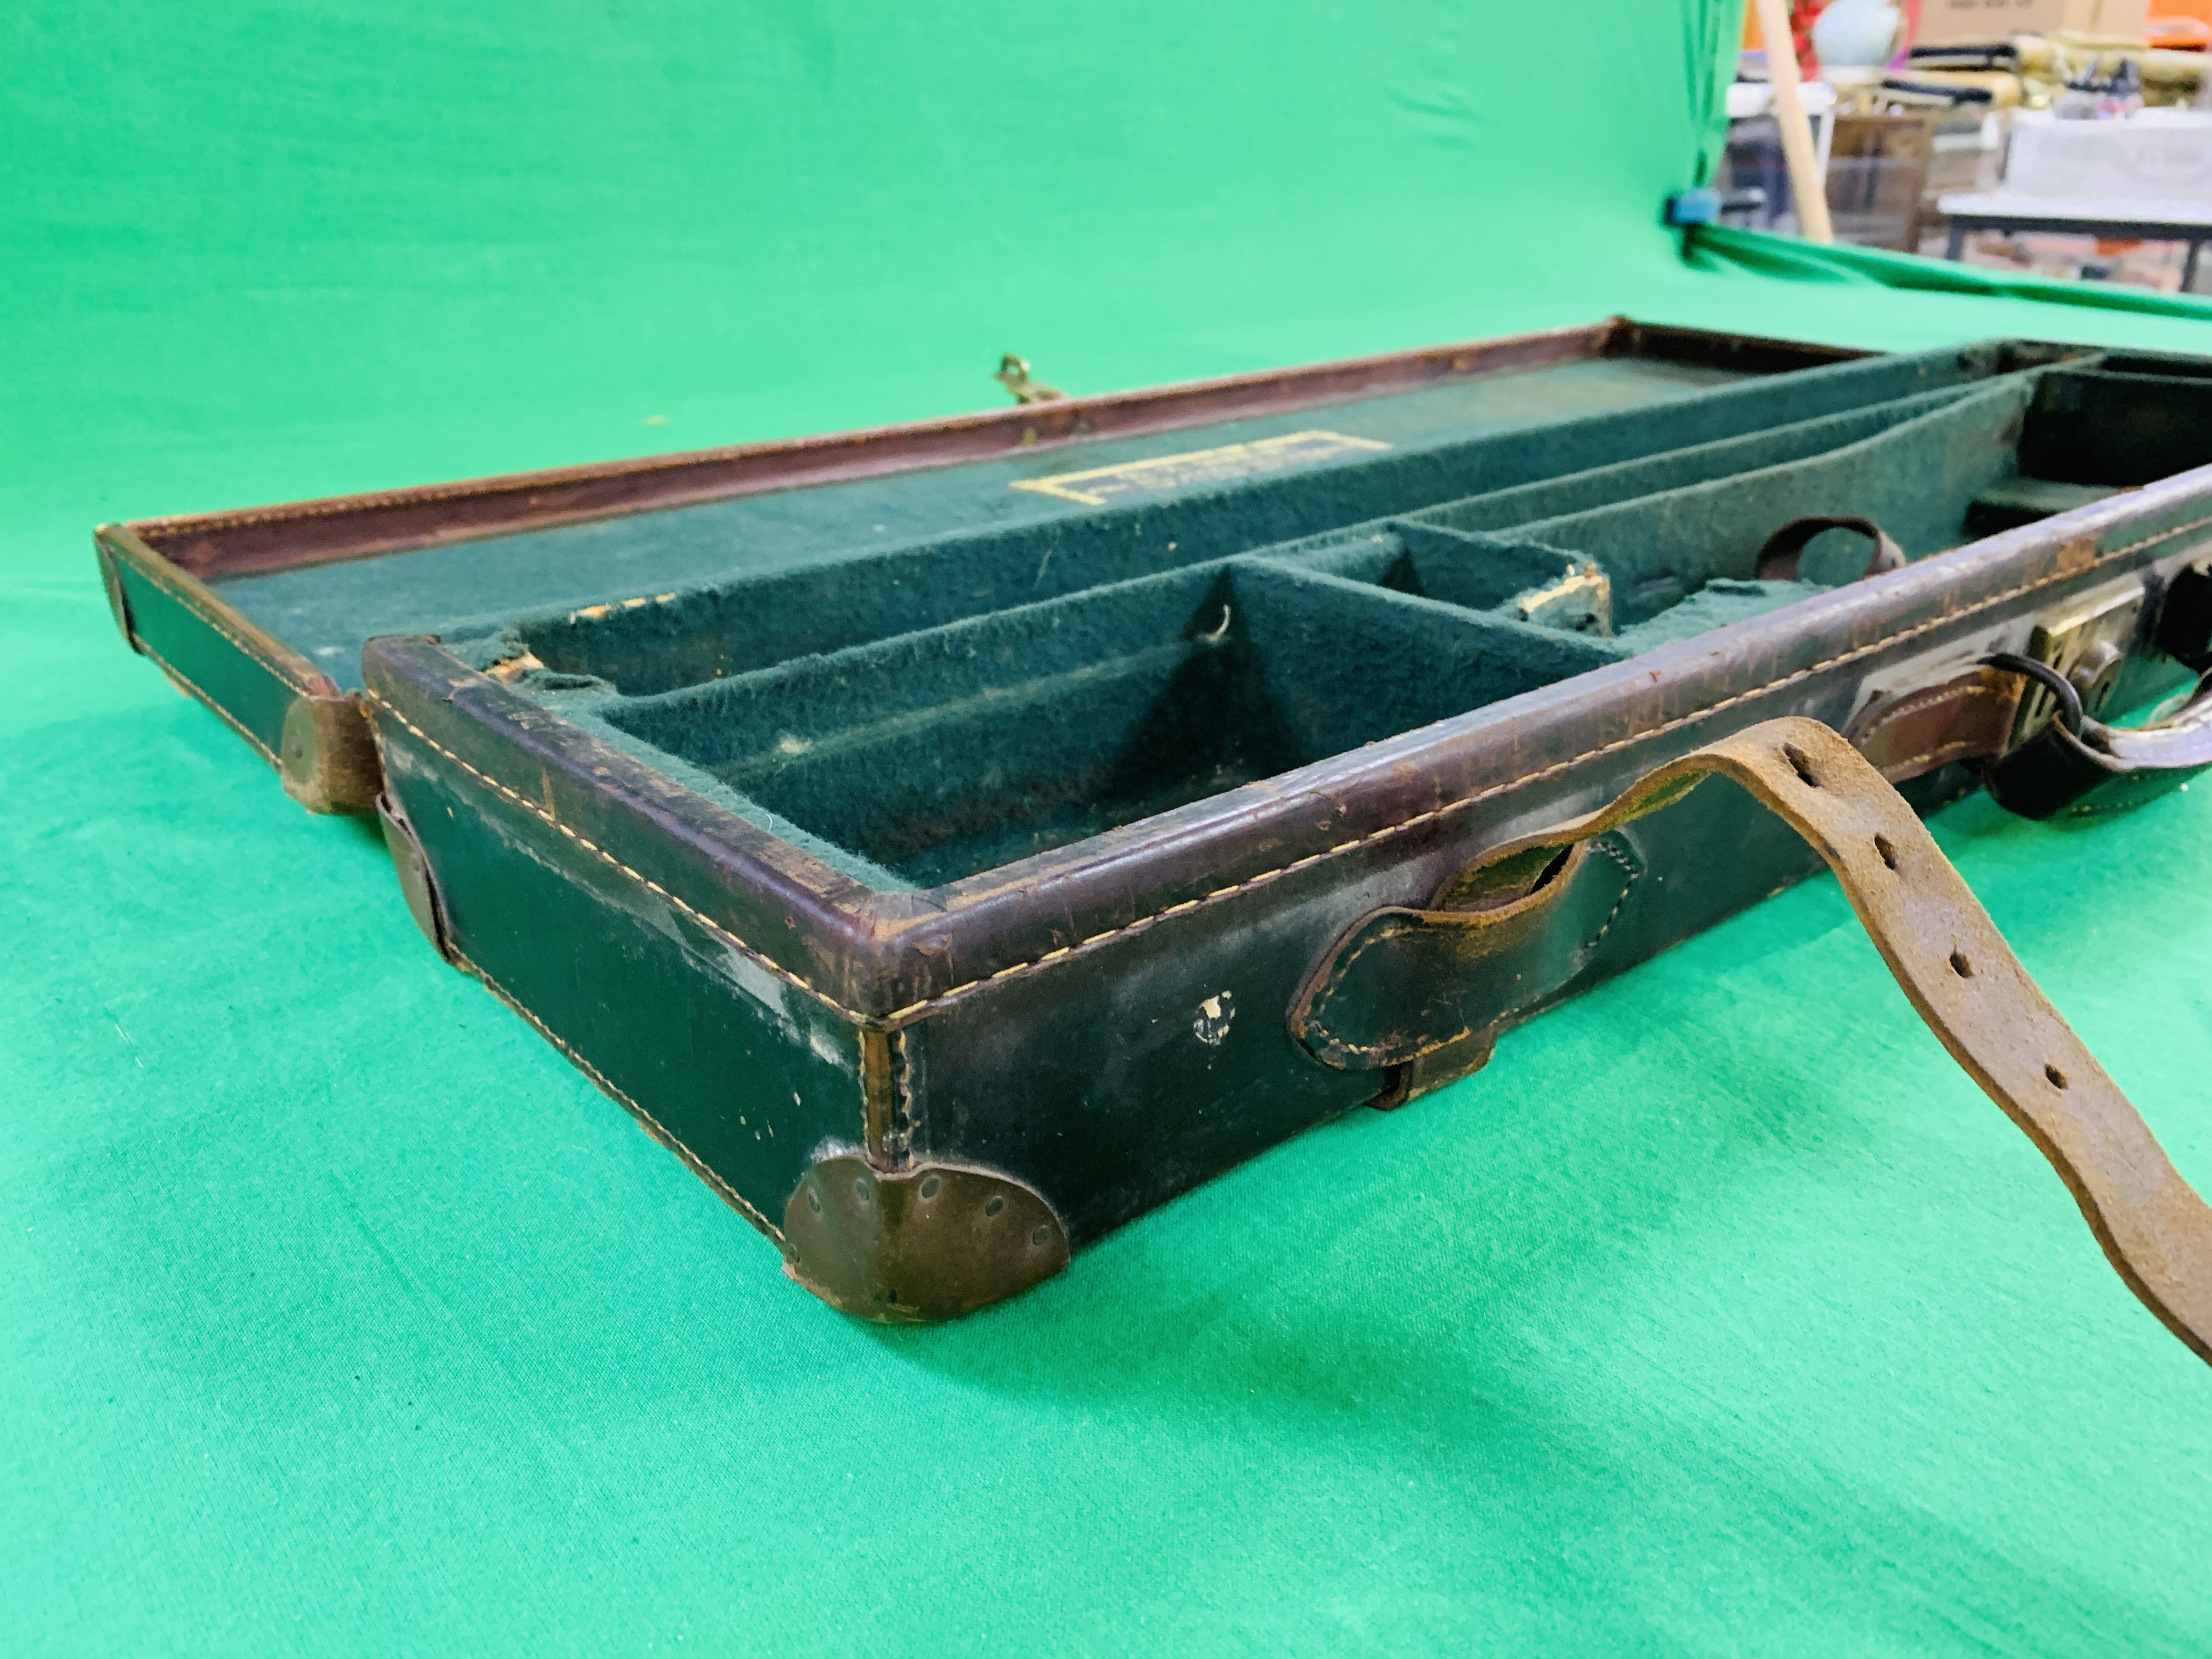 """BEST LEATHER 30"""" SIDE BY SIDE GUN CASE WITH W.W. - Image 6 of 10"""